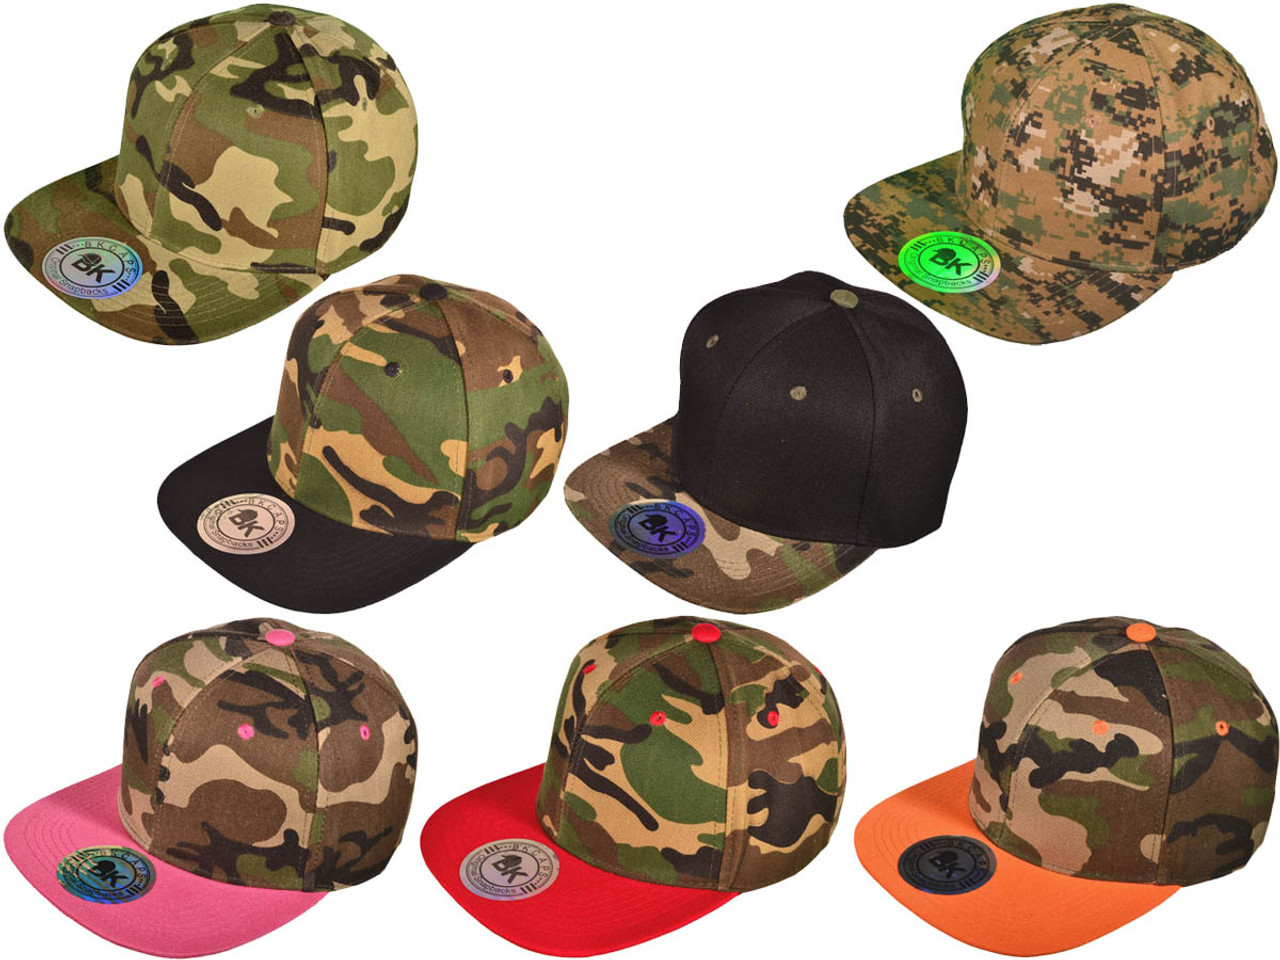 Vintage Snapback Hats >> Camo Snapback Hats Bk Caps Flat Bill Plain Vintage Snapbacks With Same Color Underbill 5234